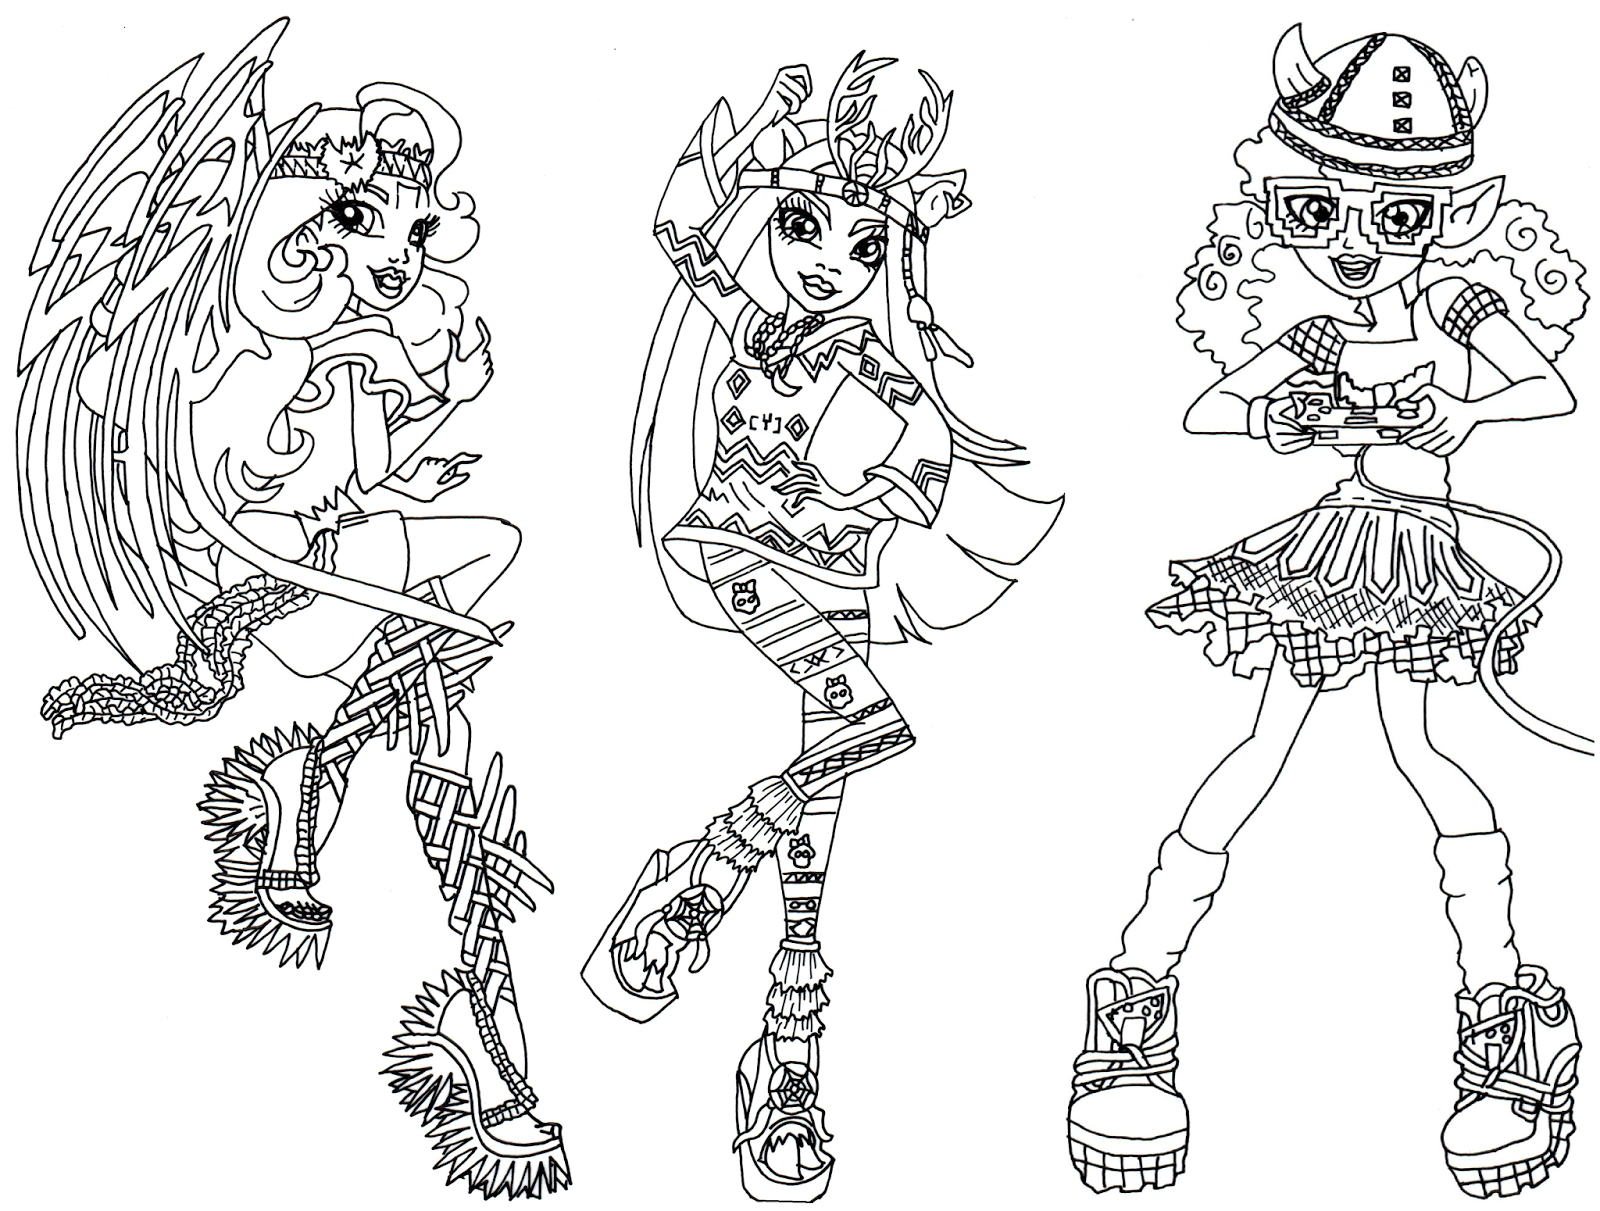 boo york brand boo students batsy claro isi dawndancer and kjersti trollson free printable monster high coloring page